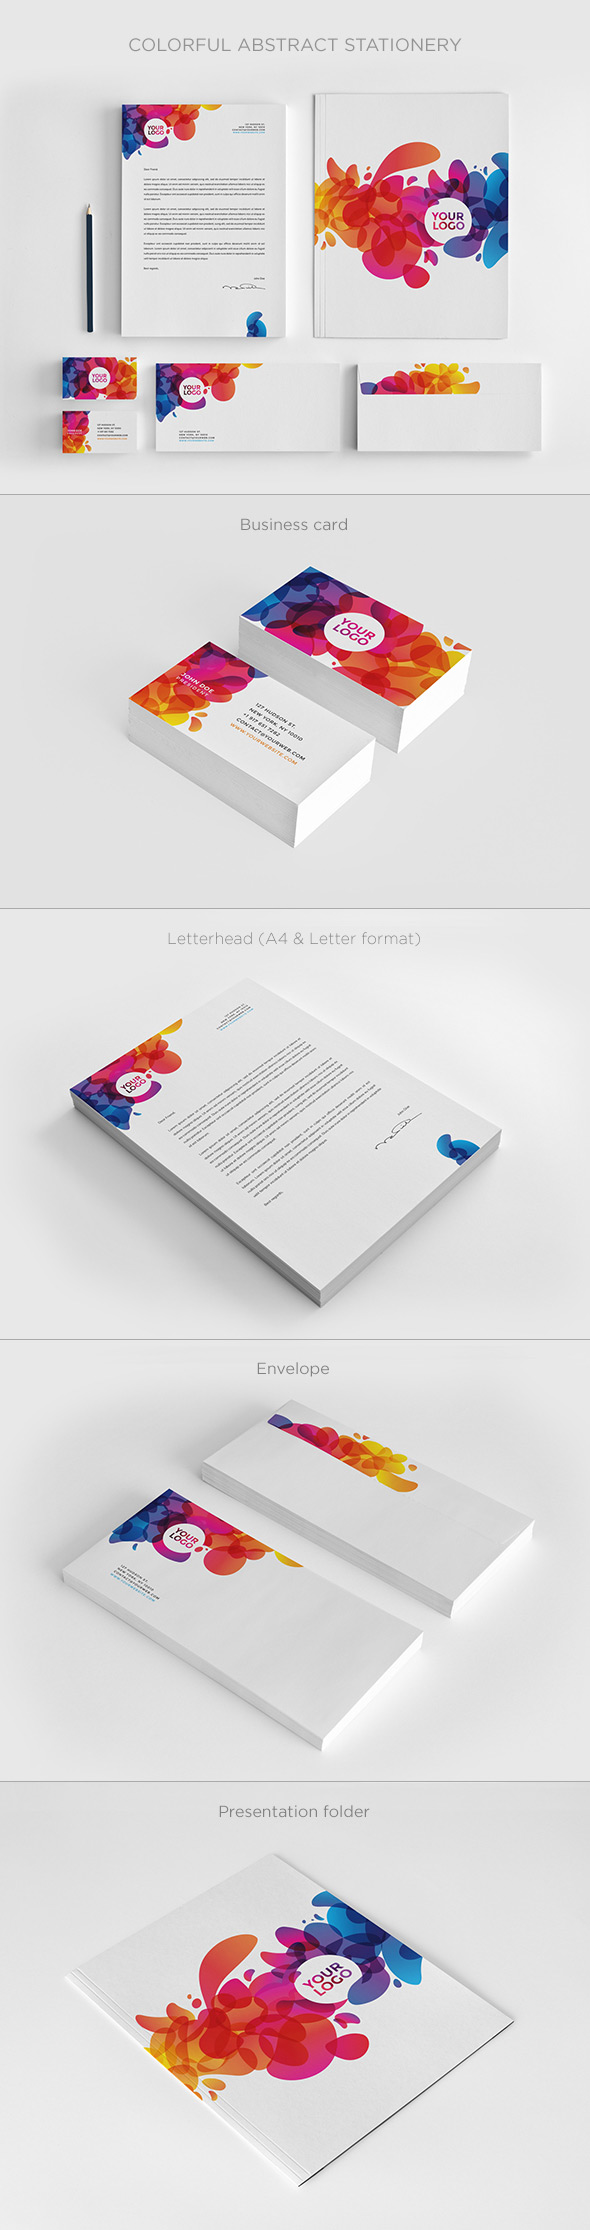 15 corporate brand identity packageswith creative designs colorful abstract stationery template set wajeb Choice Image